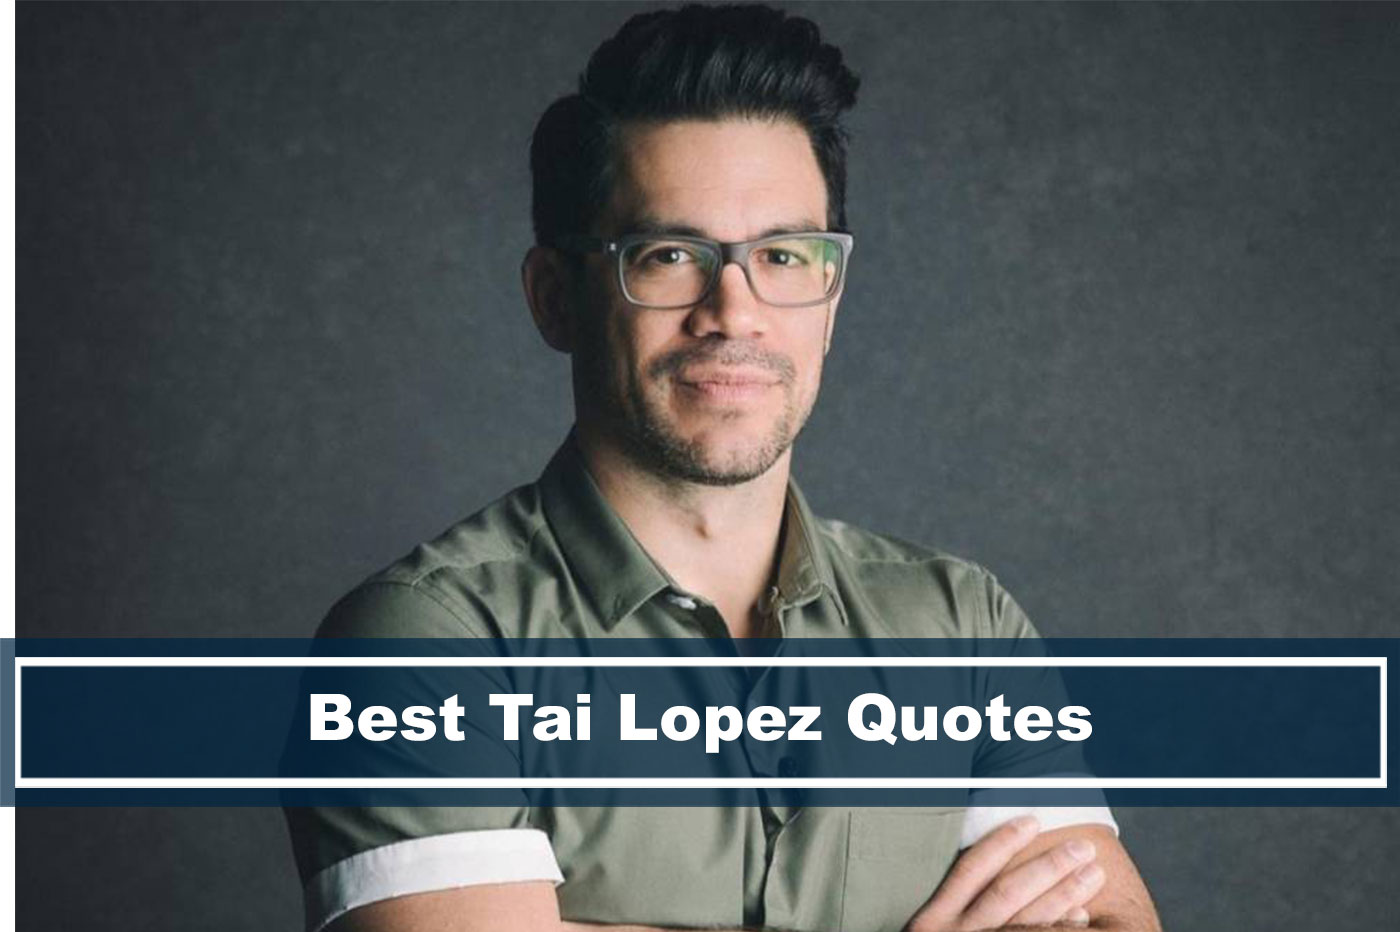 best Tai Lopez quotes for motivation, inspiration, success, investing